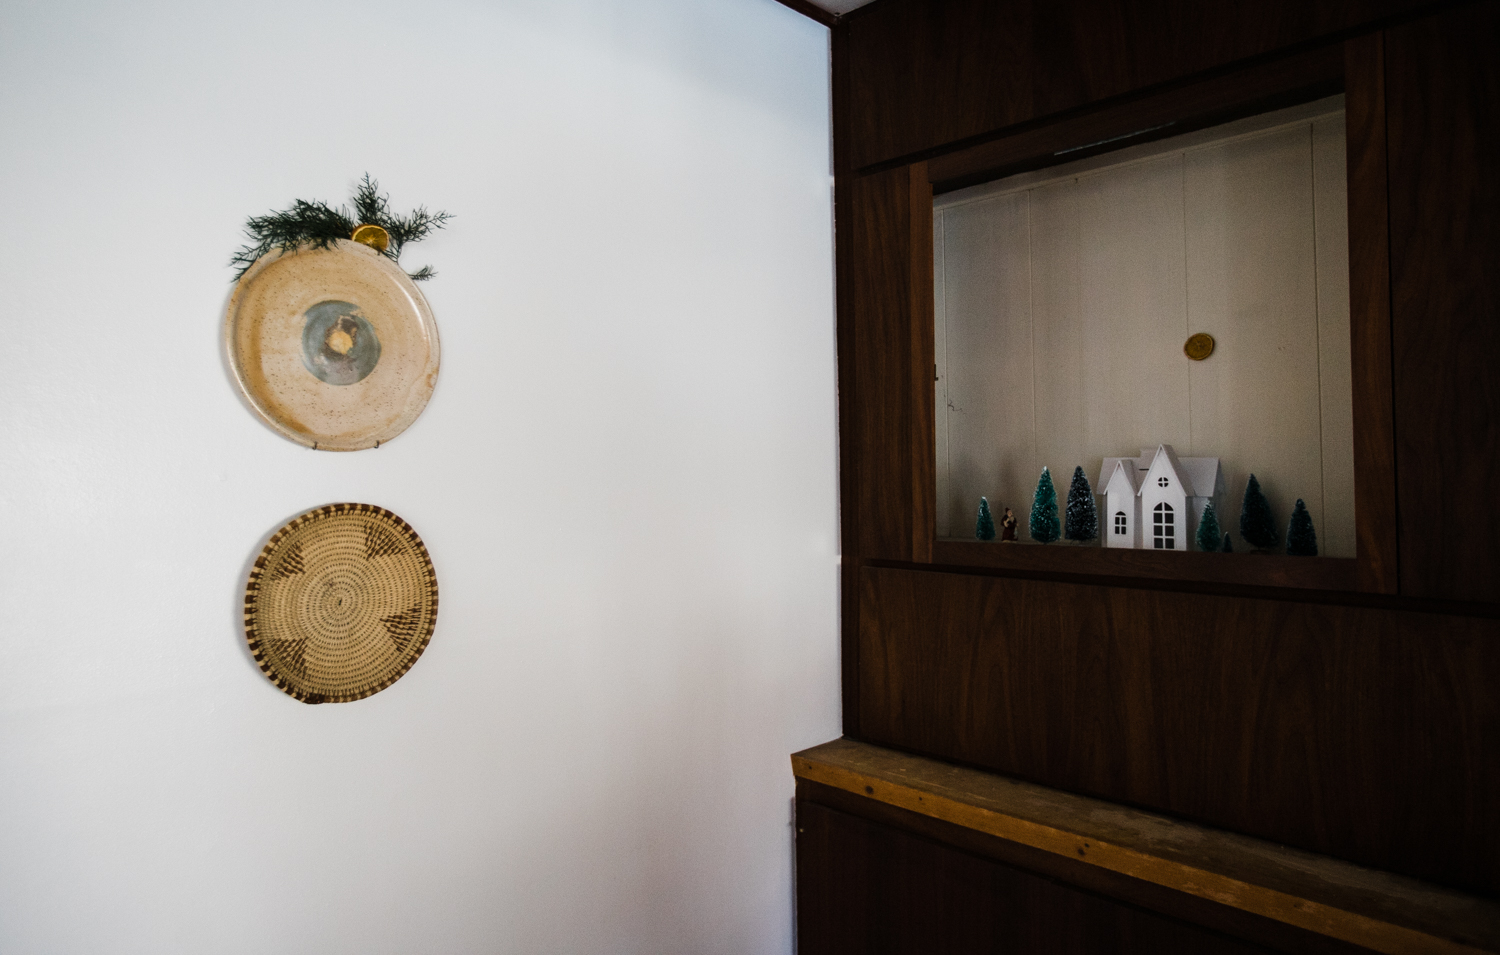 I've enjoyed creating tiny Christmas vignettes throughout my home again this year.